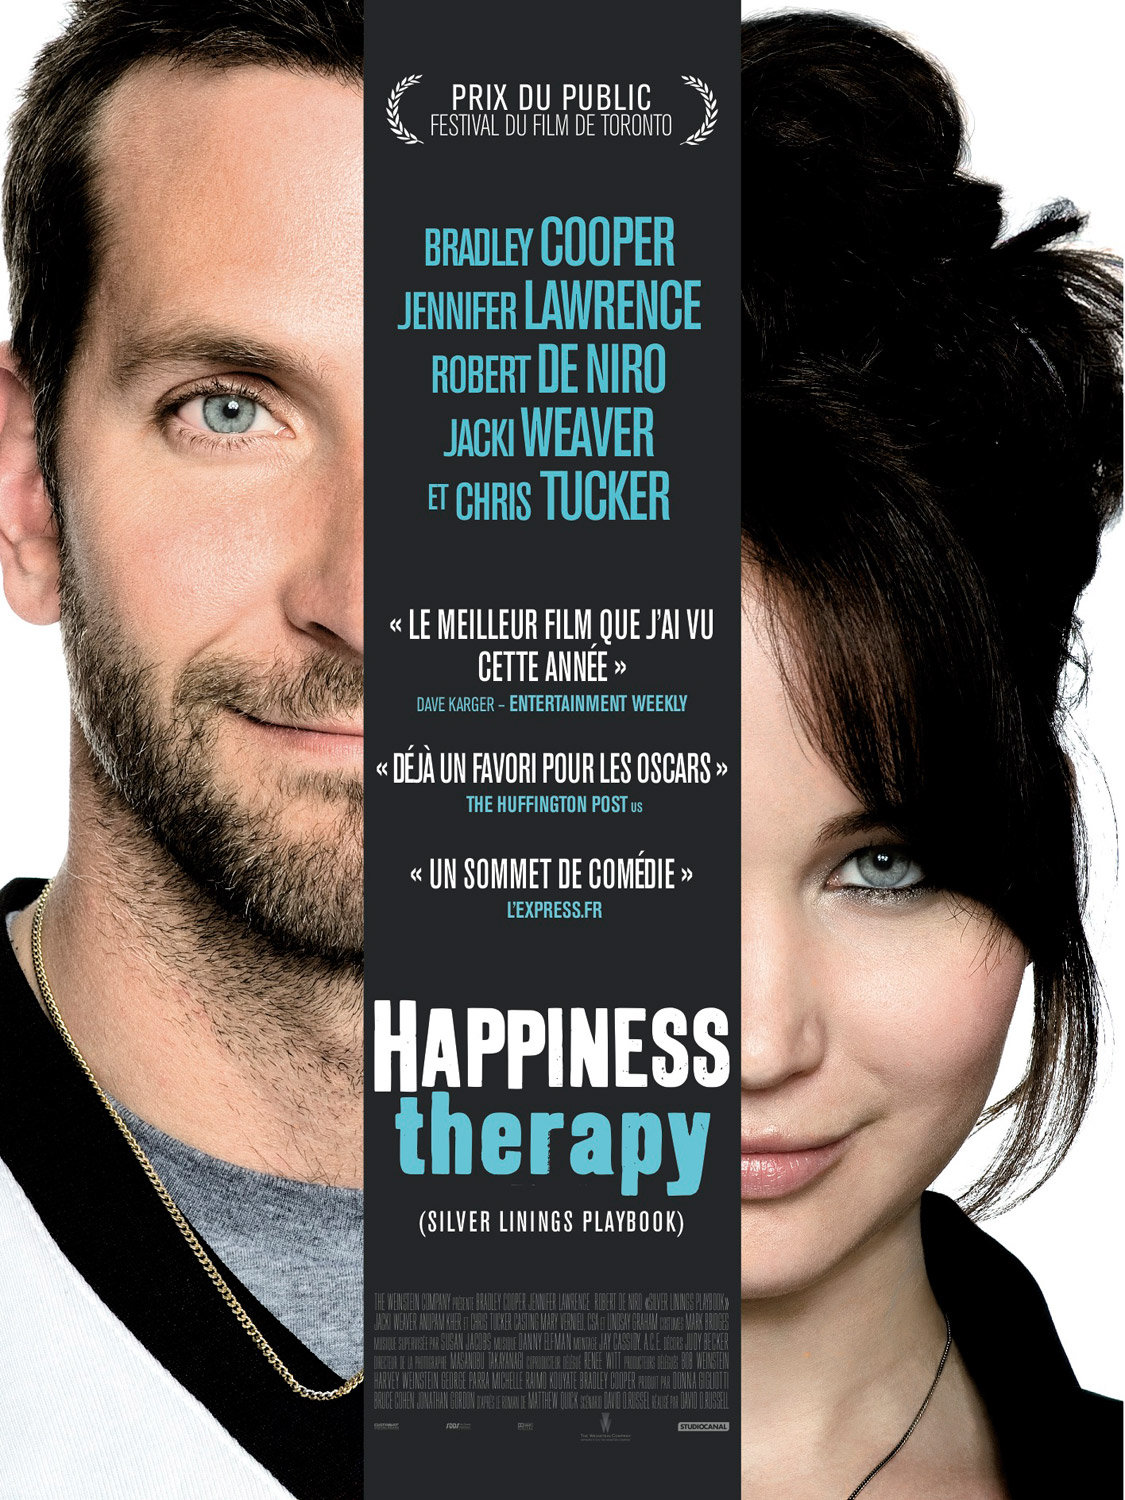 Happiness Therapy (2013)  [DVDSCR] Vostfr  (AC3)